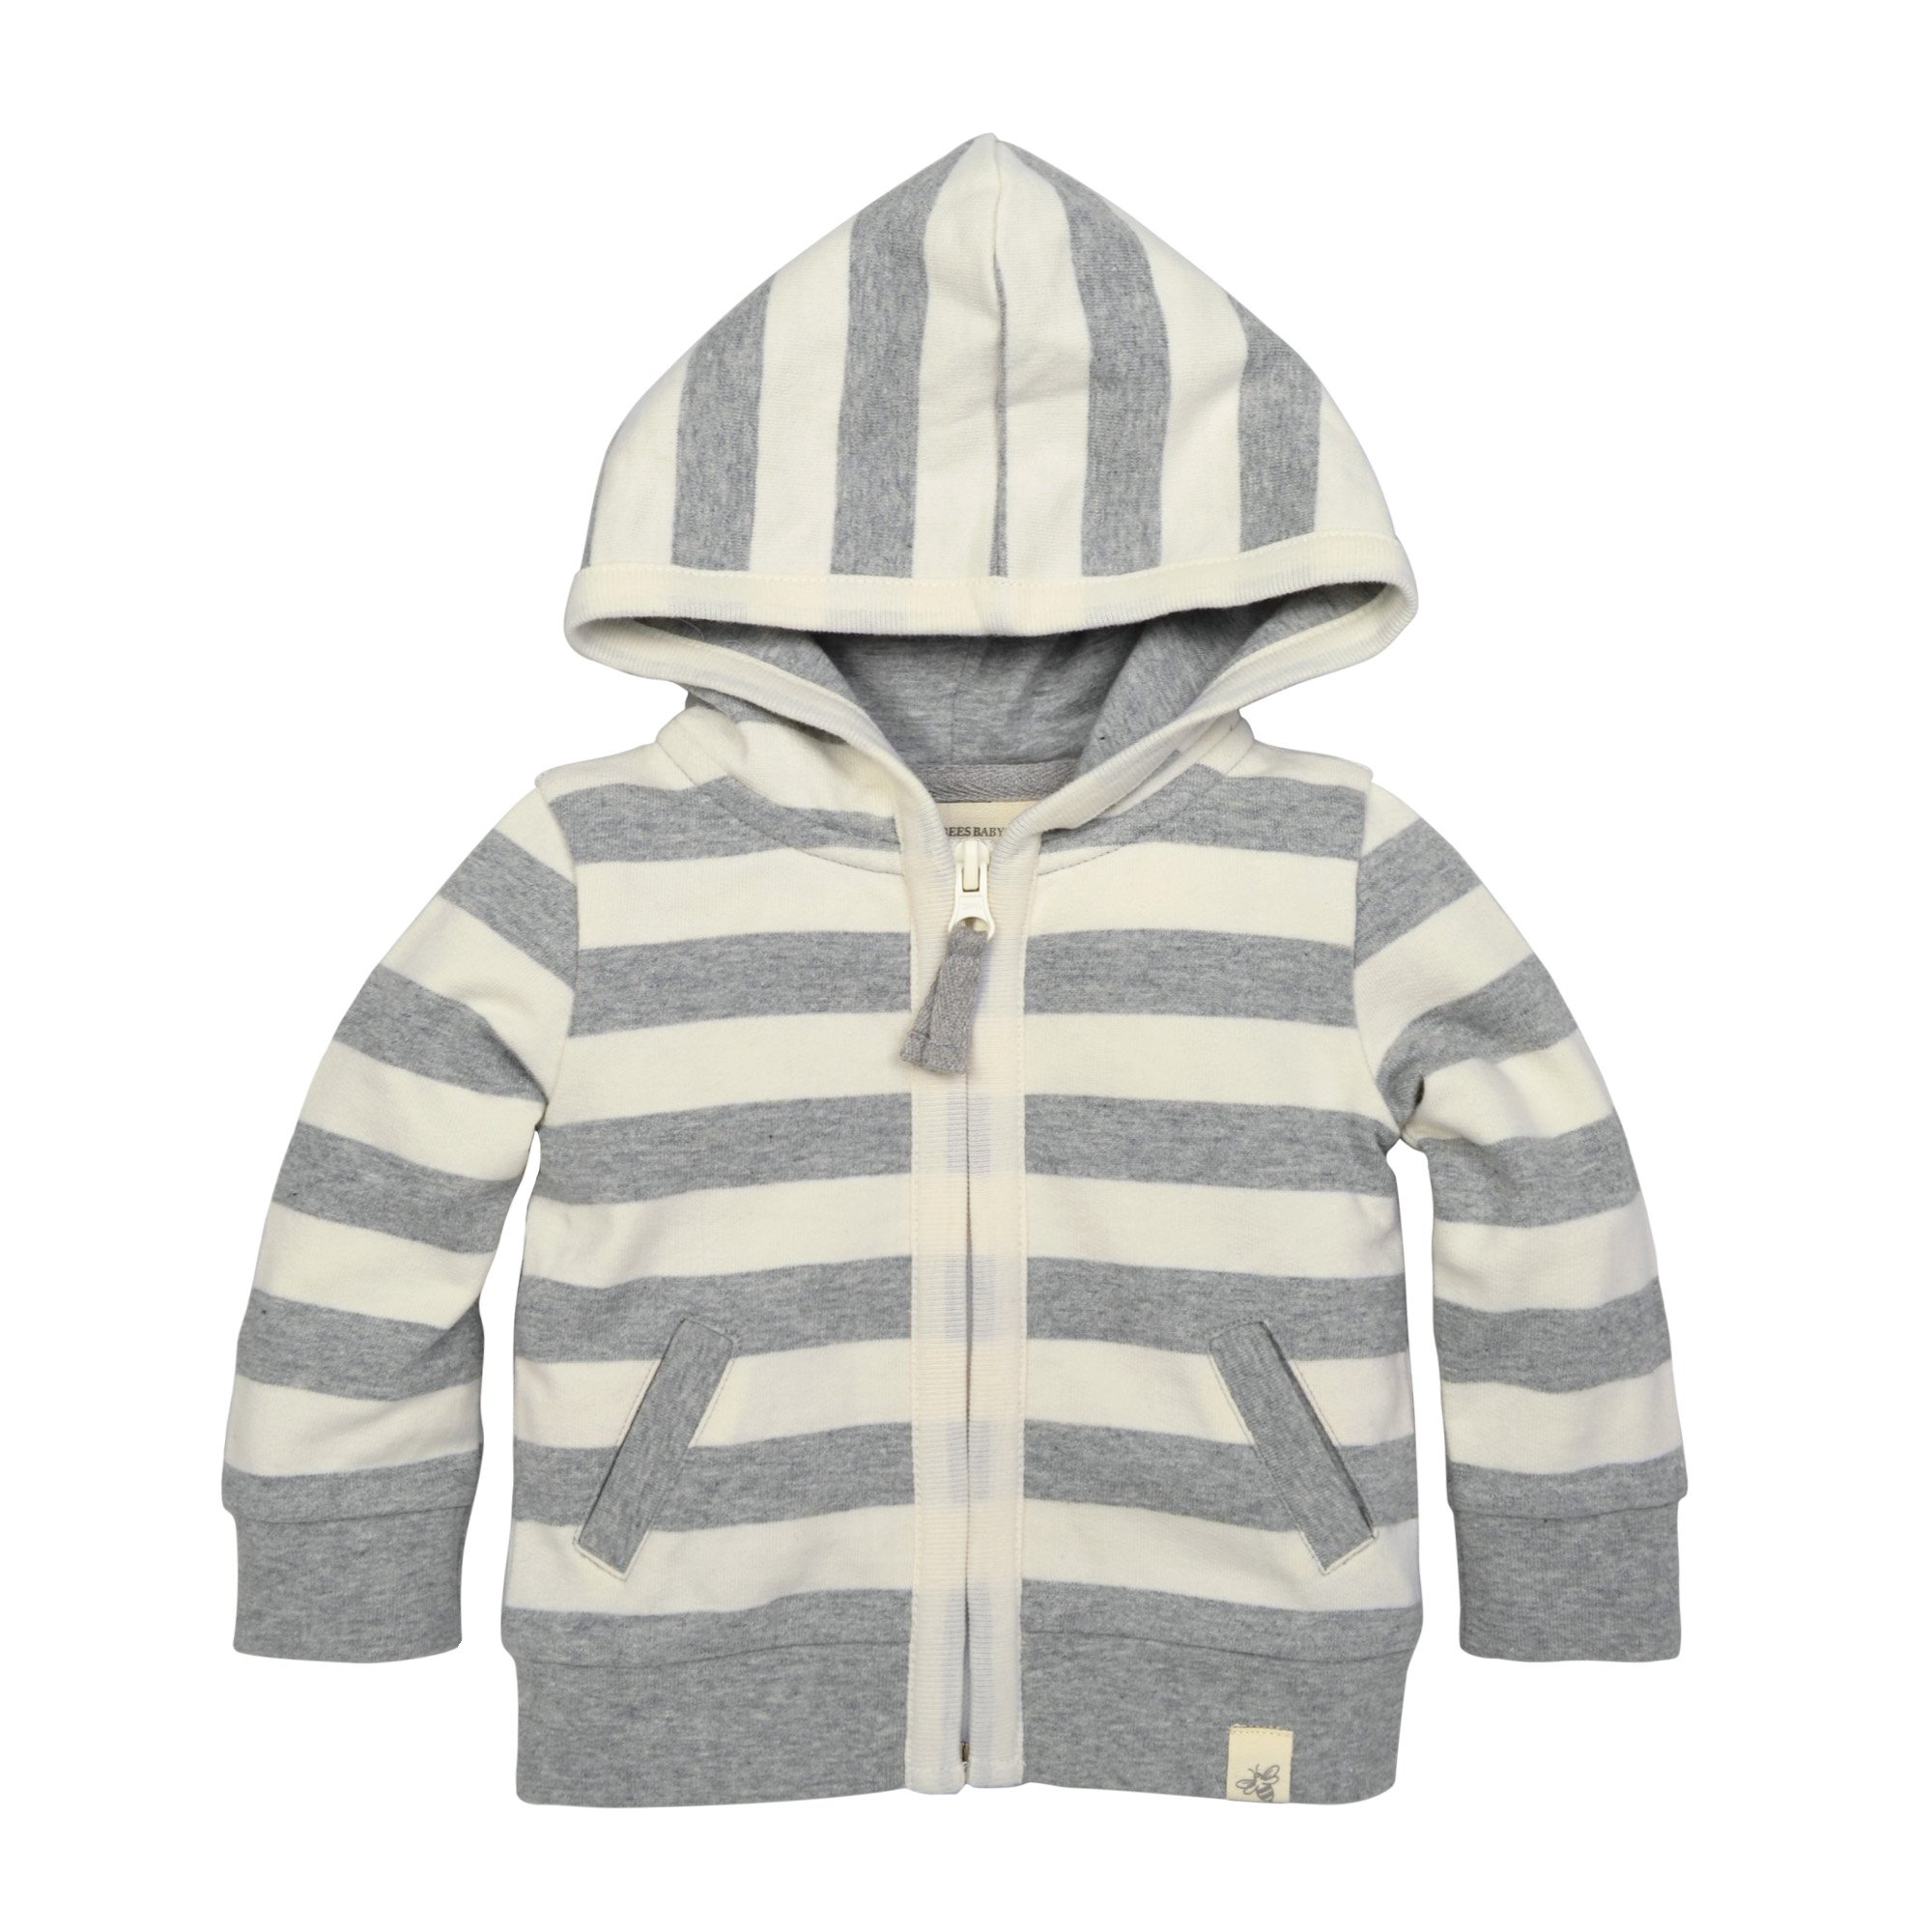 Burt's Bees Baby Unisex Baby Sweatshirt, Zip Front Hoodie Sweater, 100% Organic Cotton, Heather Grey French Terry Stripe, 18 Months